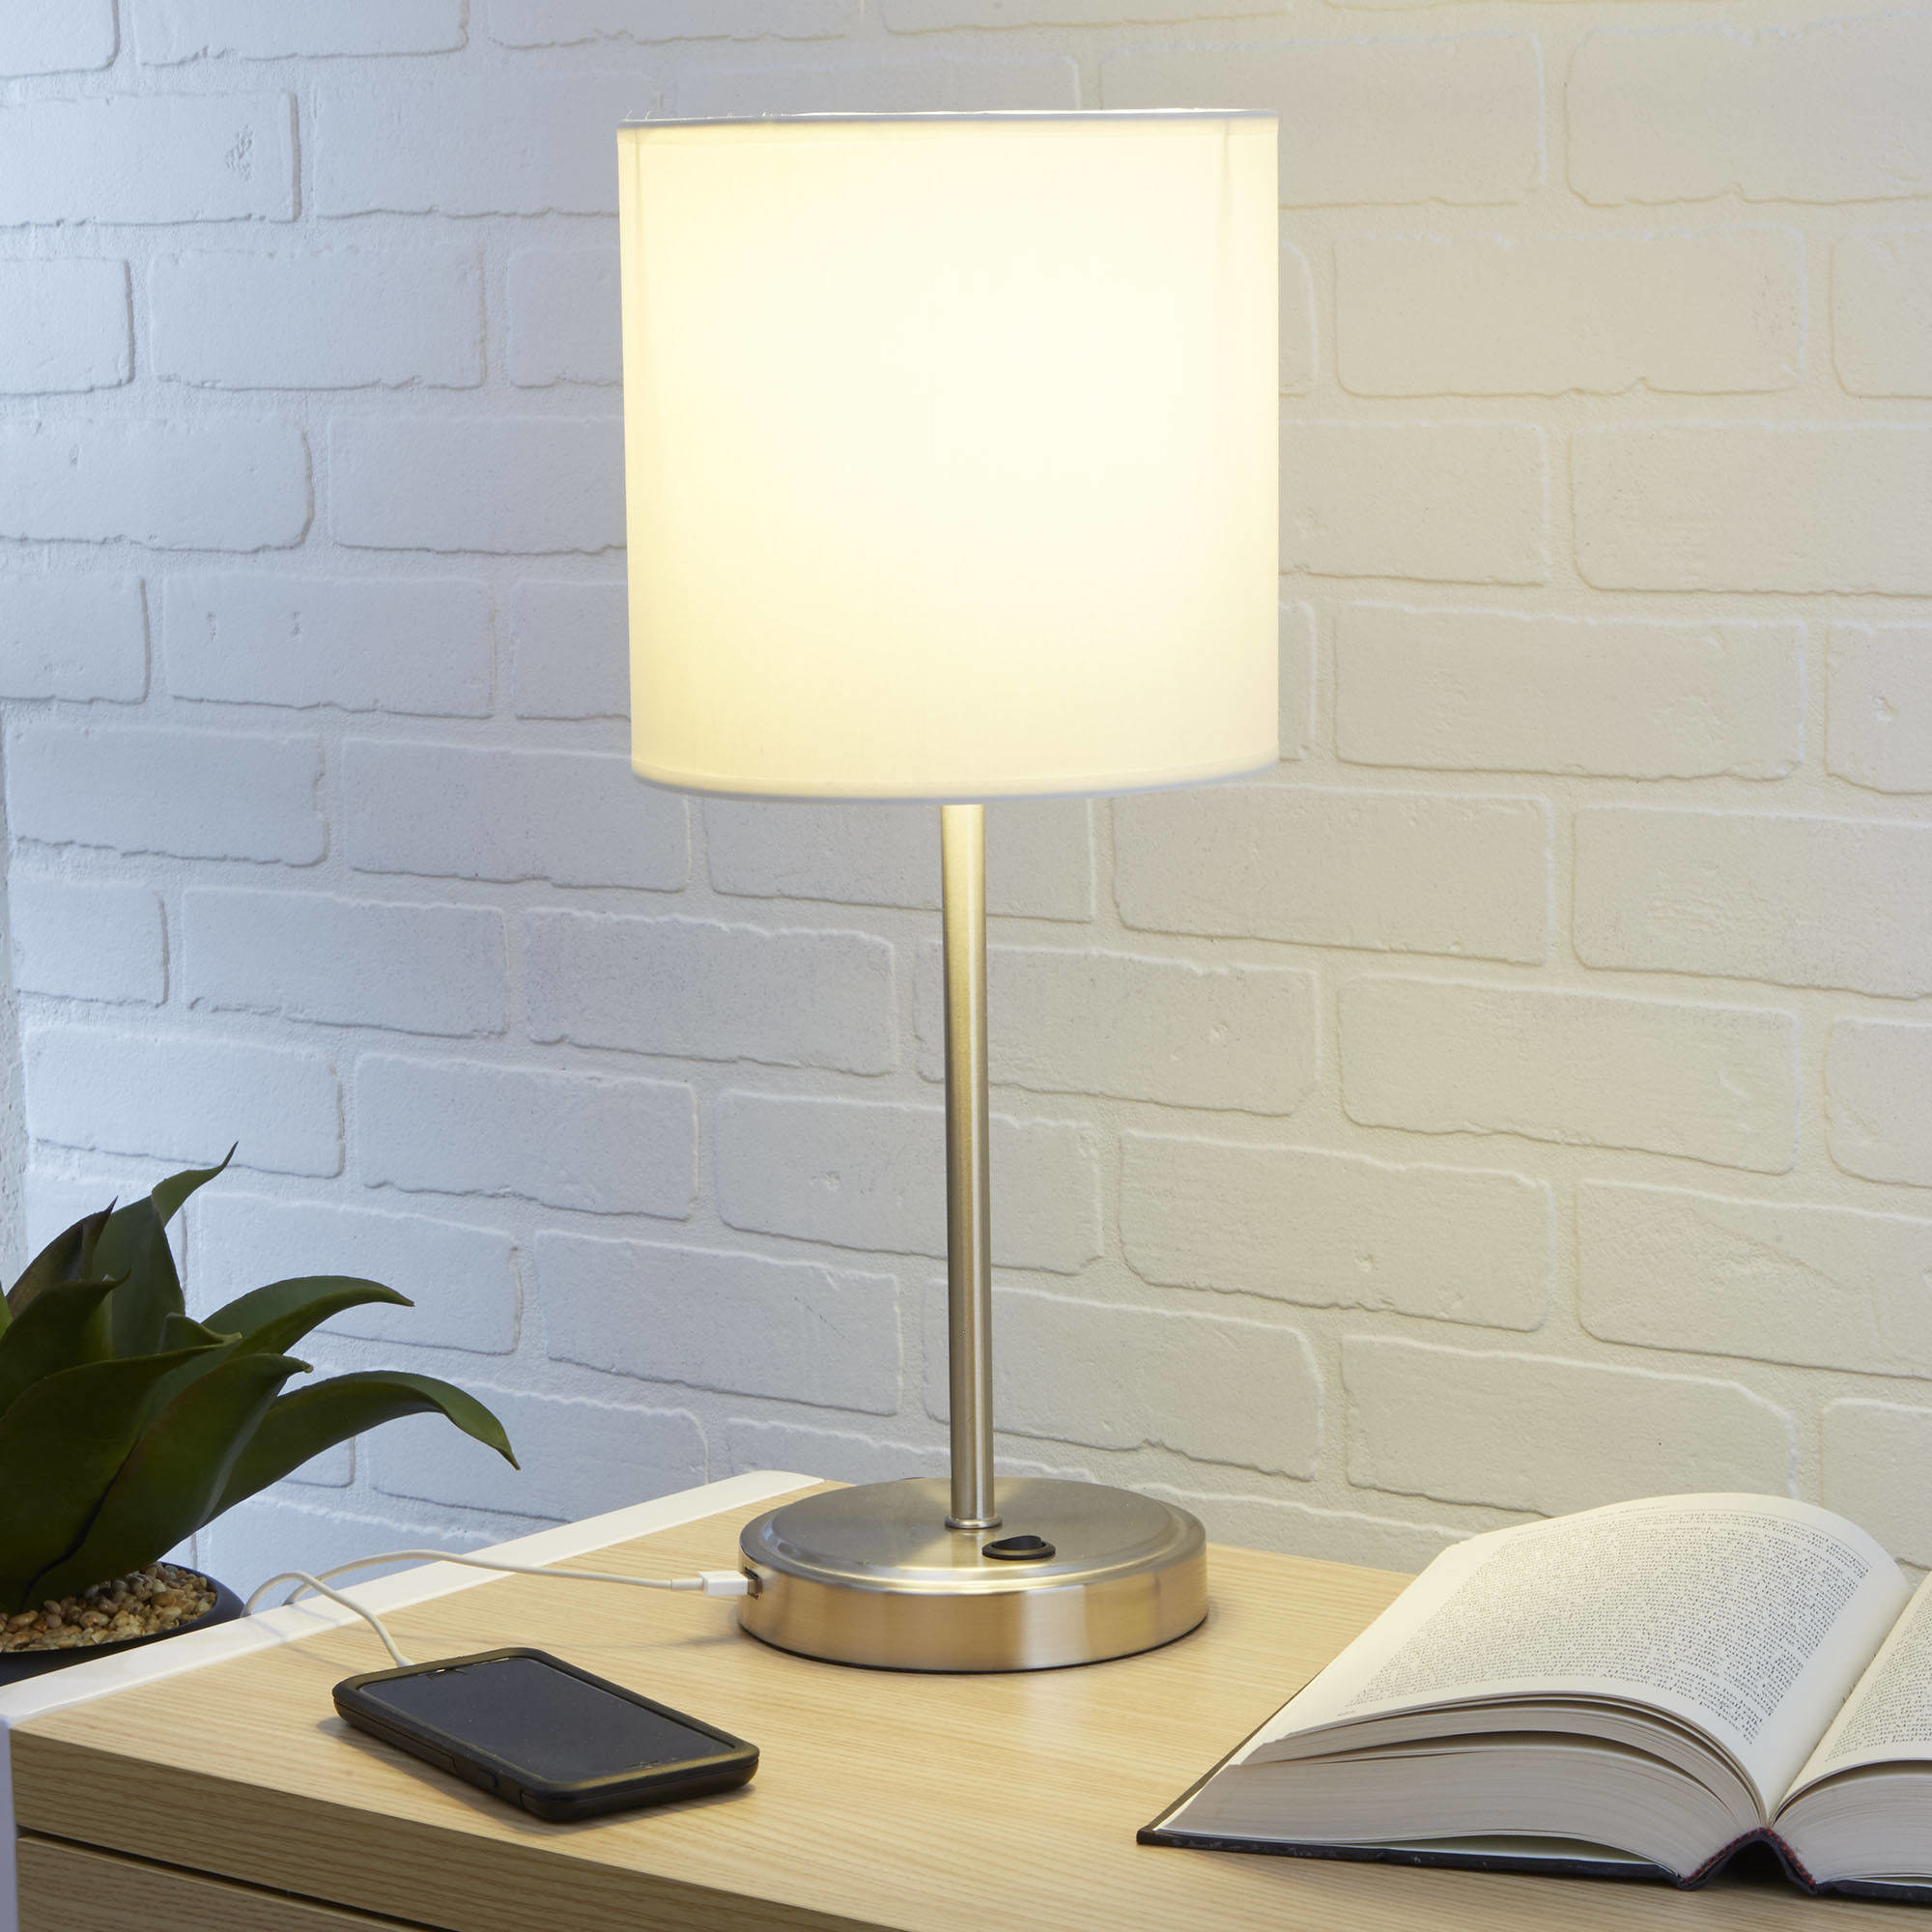 A silver lamp with a USB port